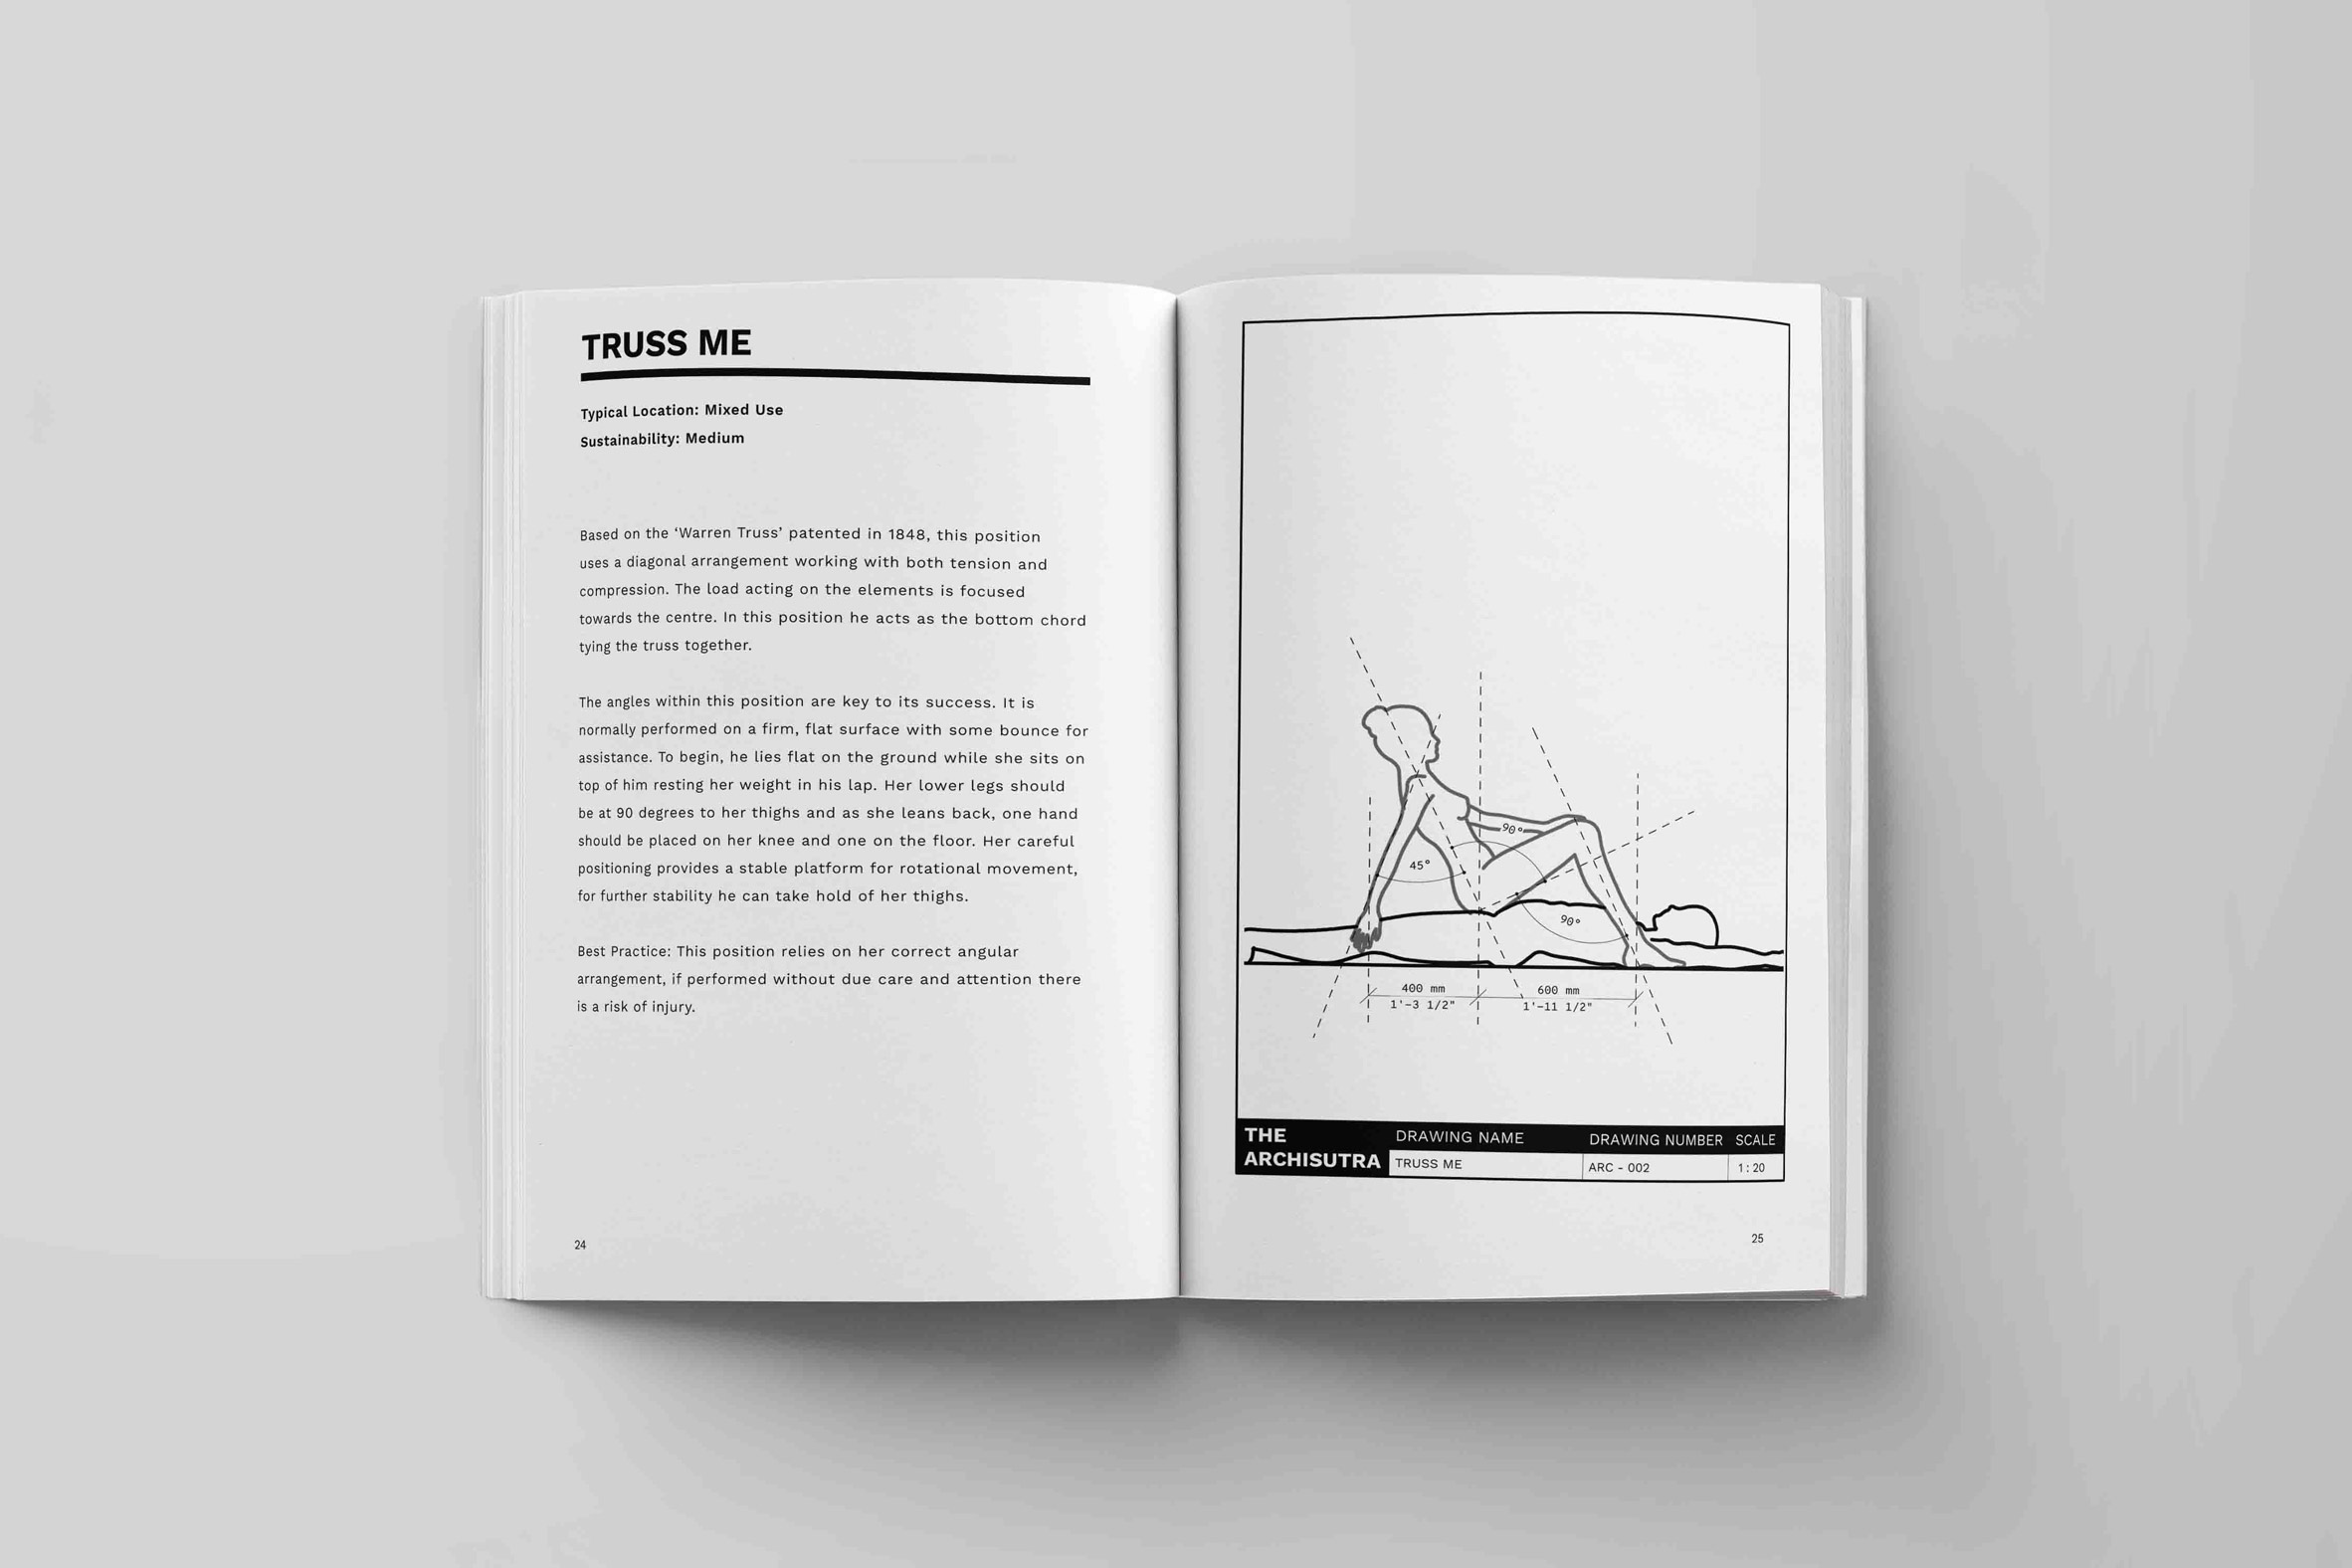 Archisutra manual teaches architecture and design-inspired sex positions